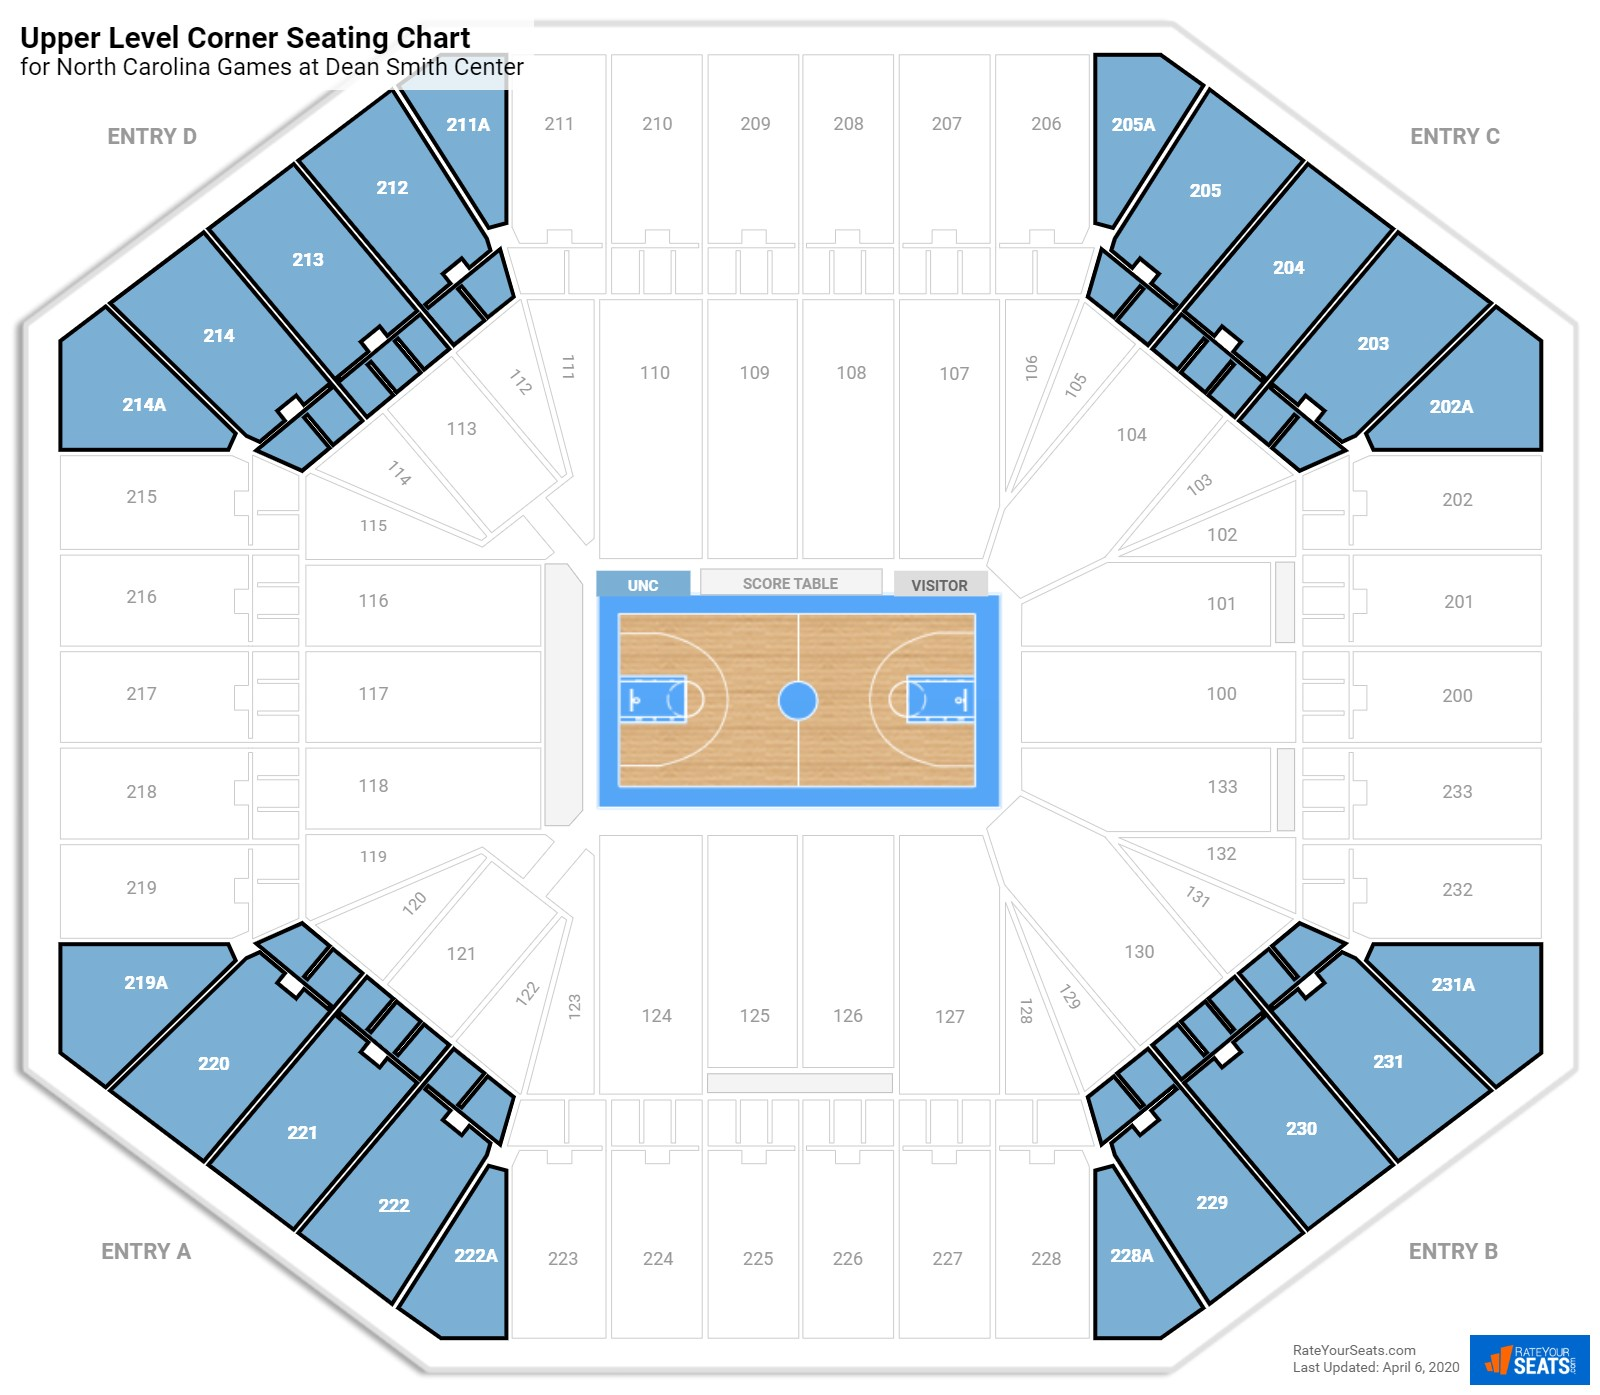 Dean Smith Center Upper Level Corner Seating Chart